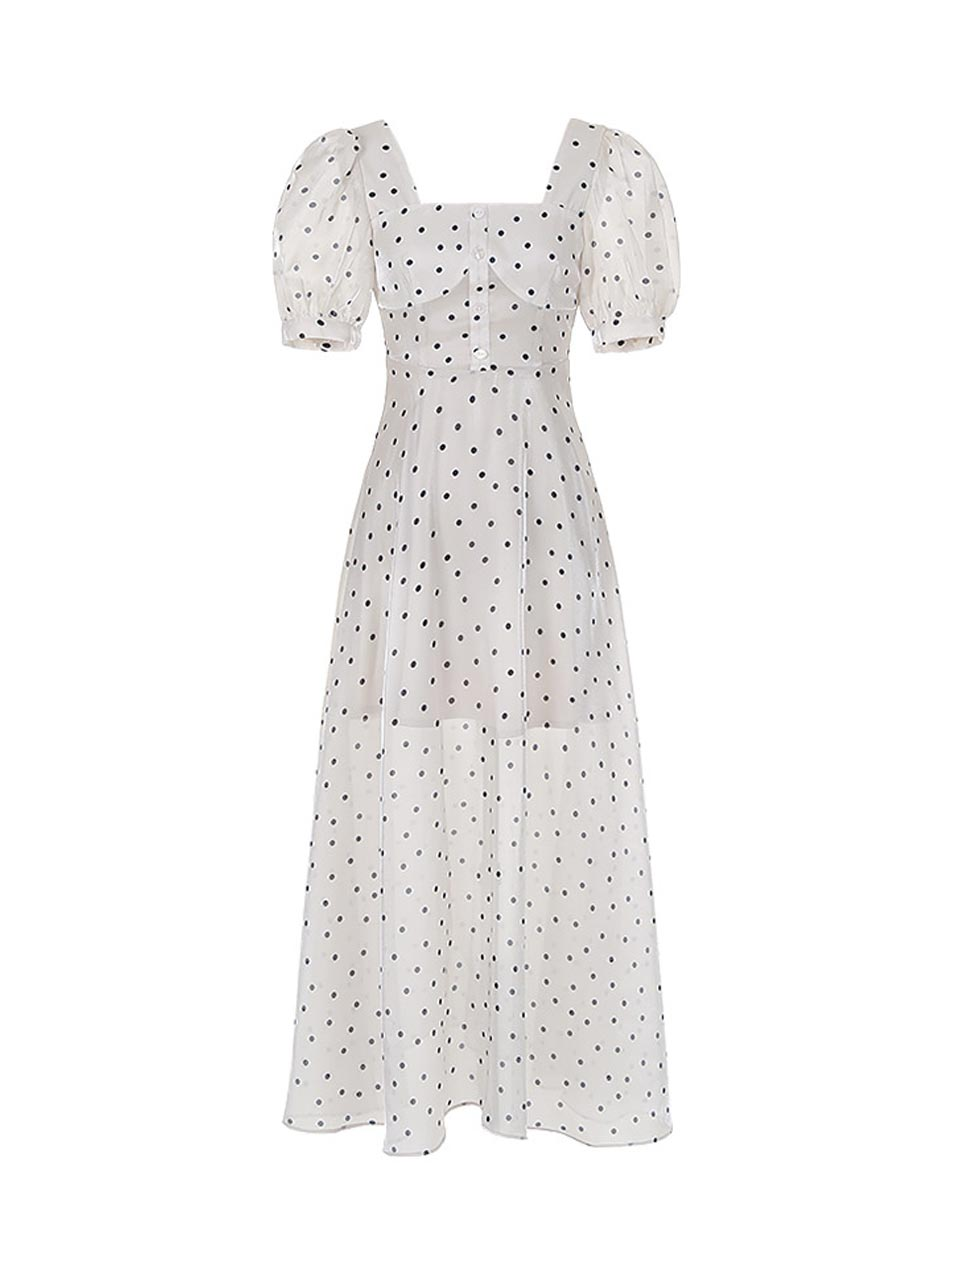 GUKAThe Esther Dot Dress